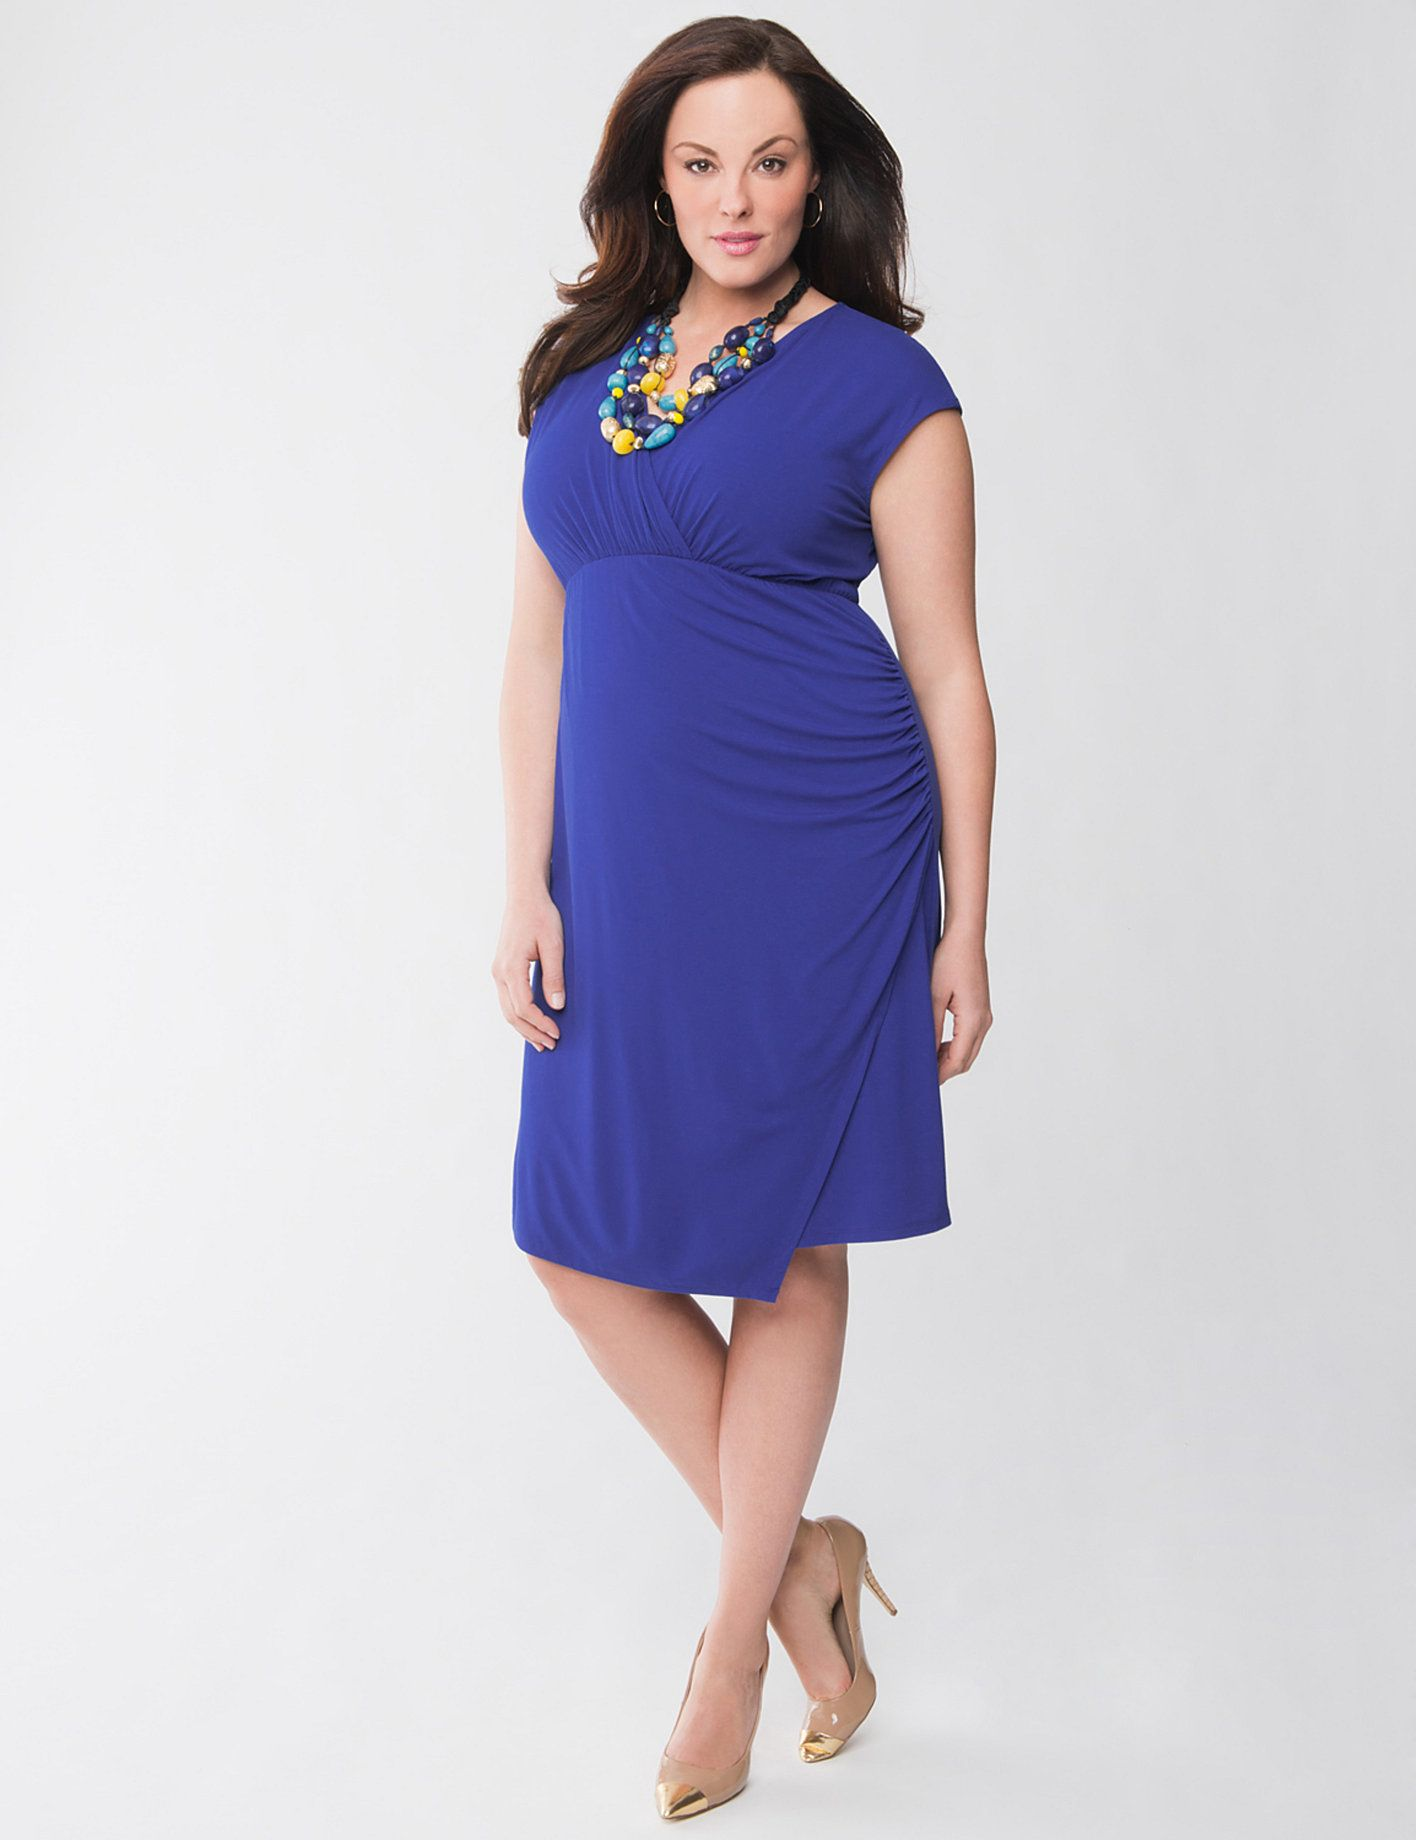 surplice dress from Lane Bryant | My Fashionista Flow | Pinterest